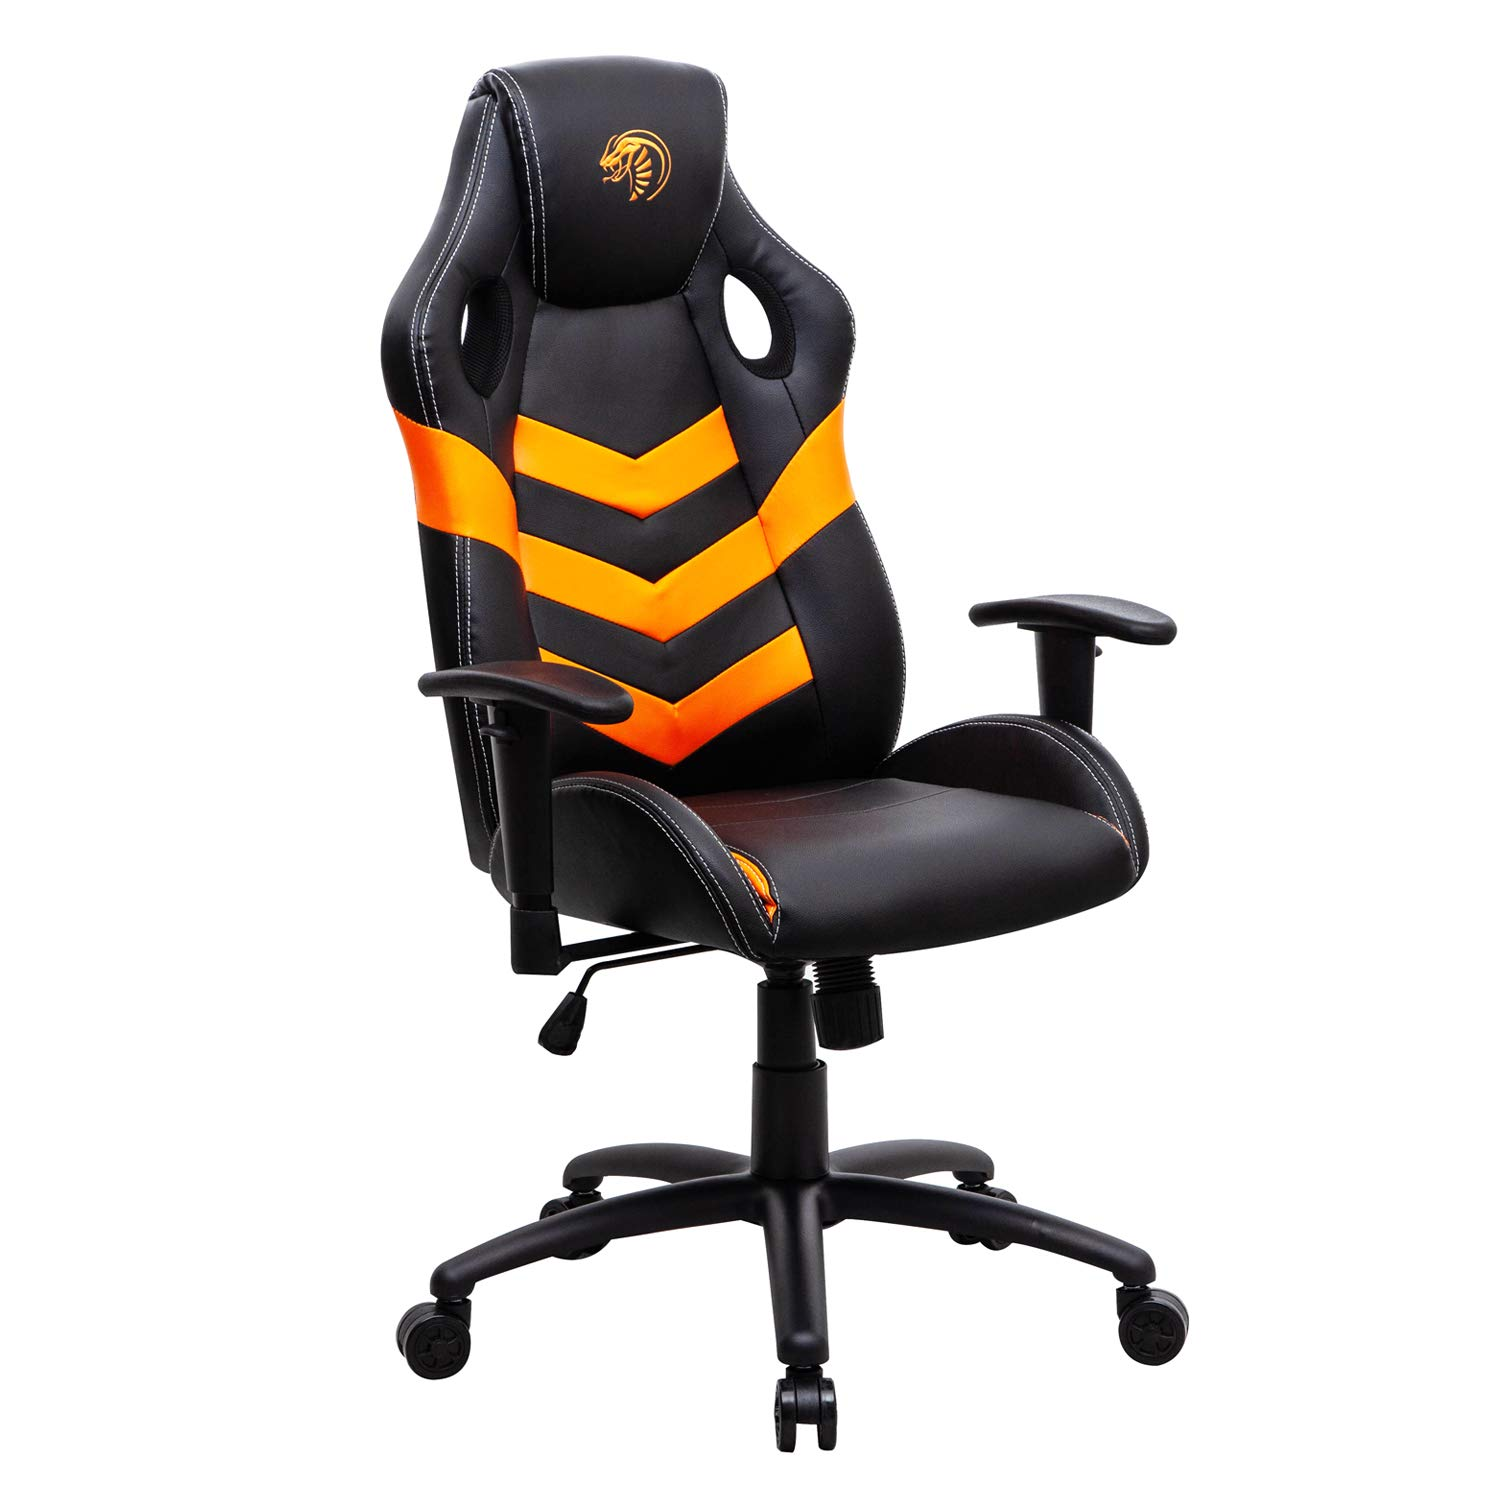 High Back Office Chair PU Leather Desk Gaming Chair | Ergonomic Adjustable Racing Chair, Swivel Executive Computer Chair (Orange) by Modern-Depo